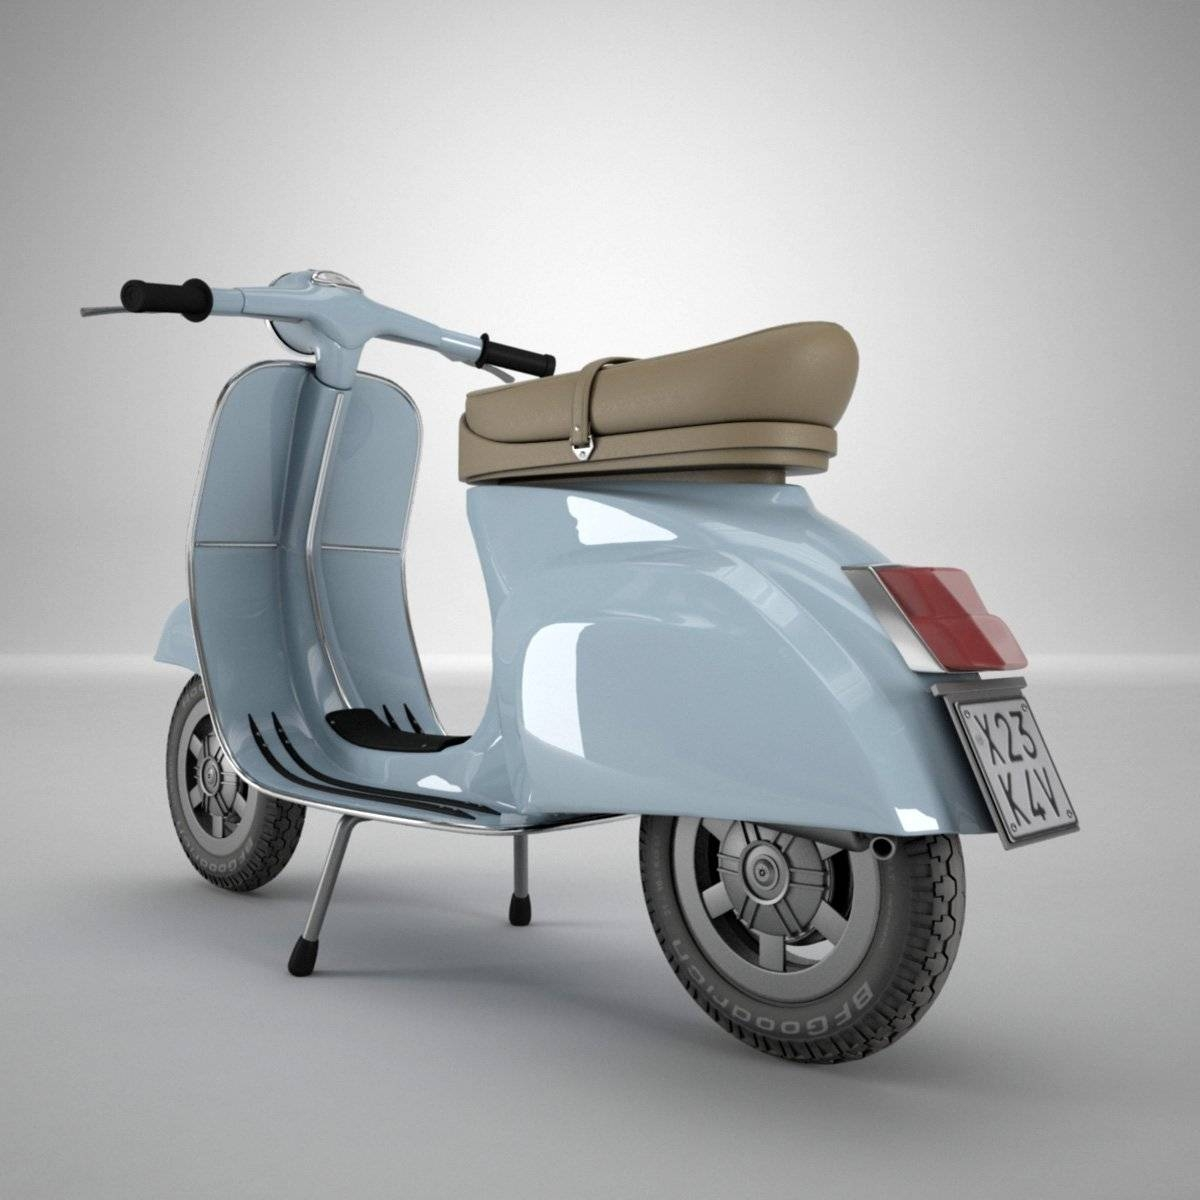 Vespa 3D Model In Motorcycle 3Dexport With Regard To 2017 Vespa 3D Wall Art (Gallery 6 of 20)